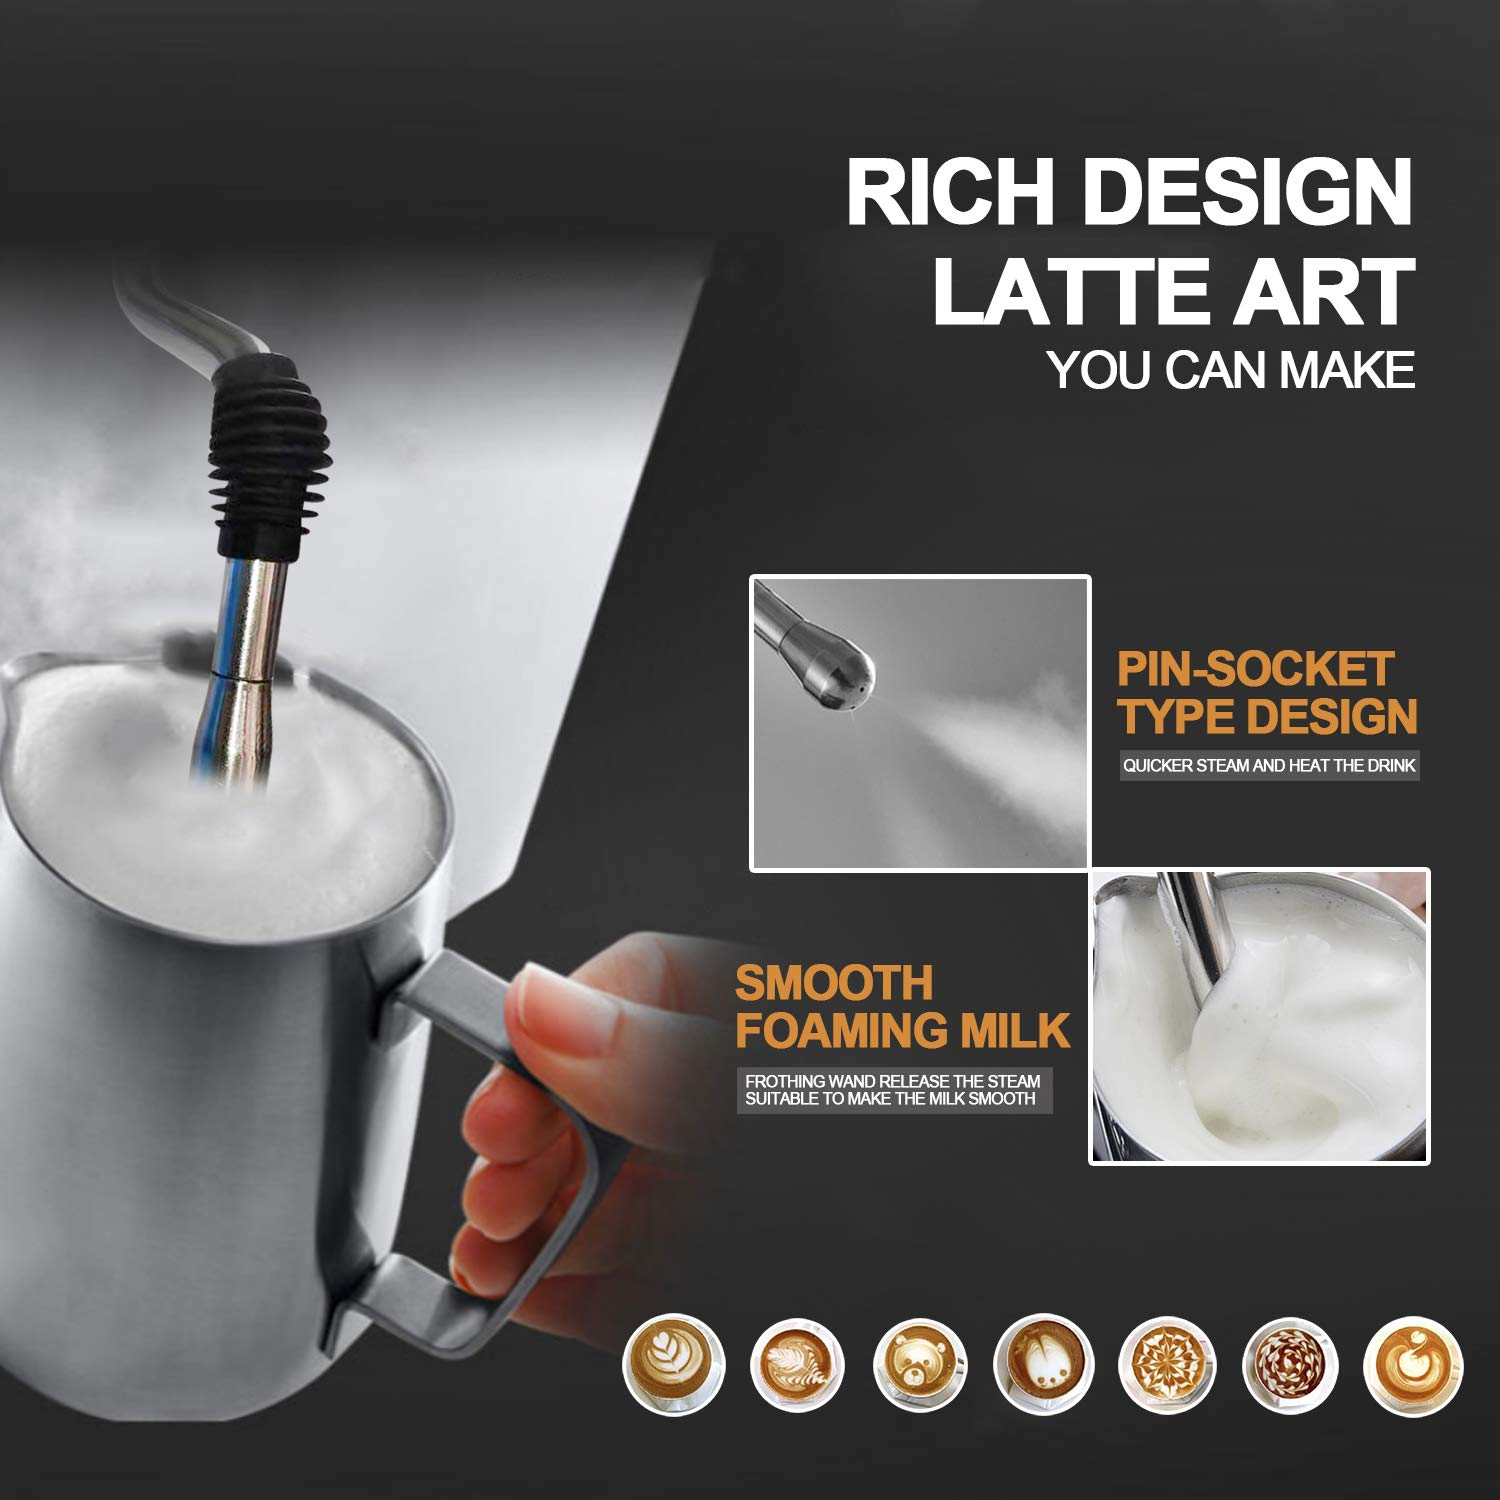 Espresso Machine Barsetto Coffee Machine 15 Bar Stainless Steel Coffee Brewer with Milk Frother Wand, Package w/Free Milk Frothing Pitcher, for Cappuccino, Latte and Mocha (Stainless Steel) (Silver) by Barsetto (Image #4)